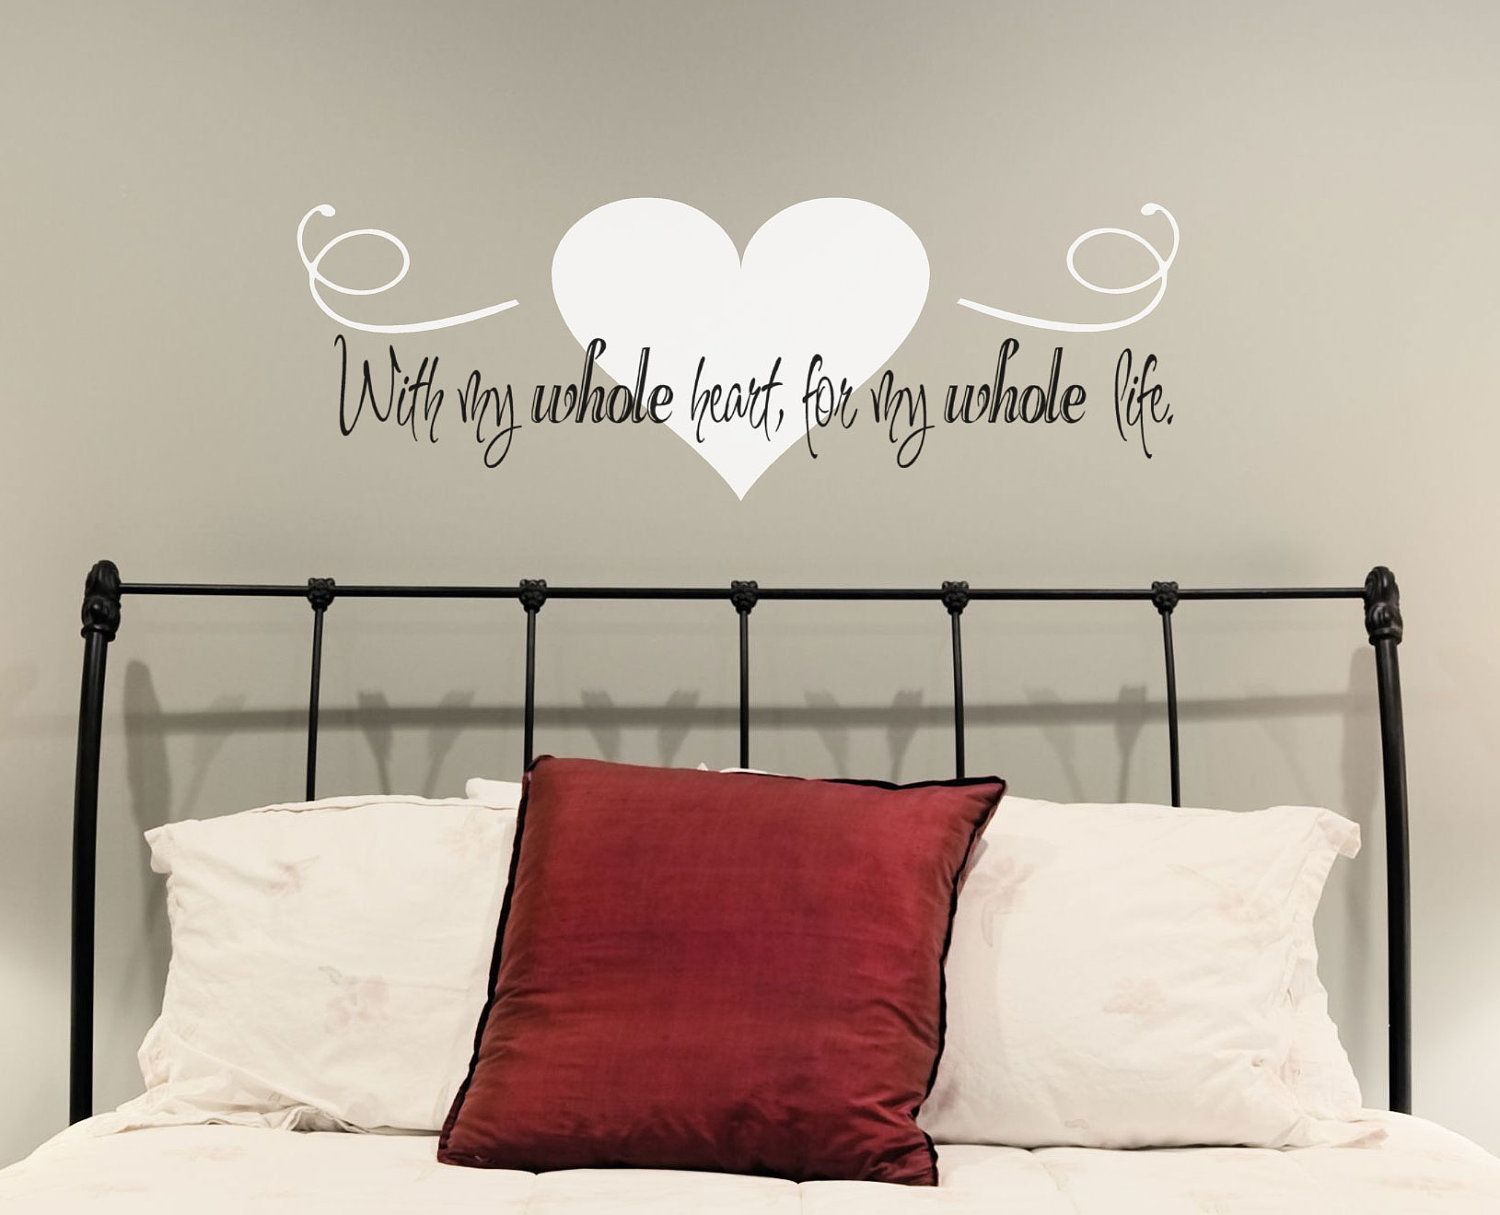 Wall words love quote with my whole heart for my whole life vinyl wall words love quote with my whole heart for my whole life vinyl wall decal lettering amipublicfo Choice Image